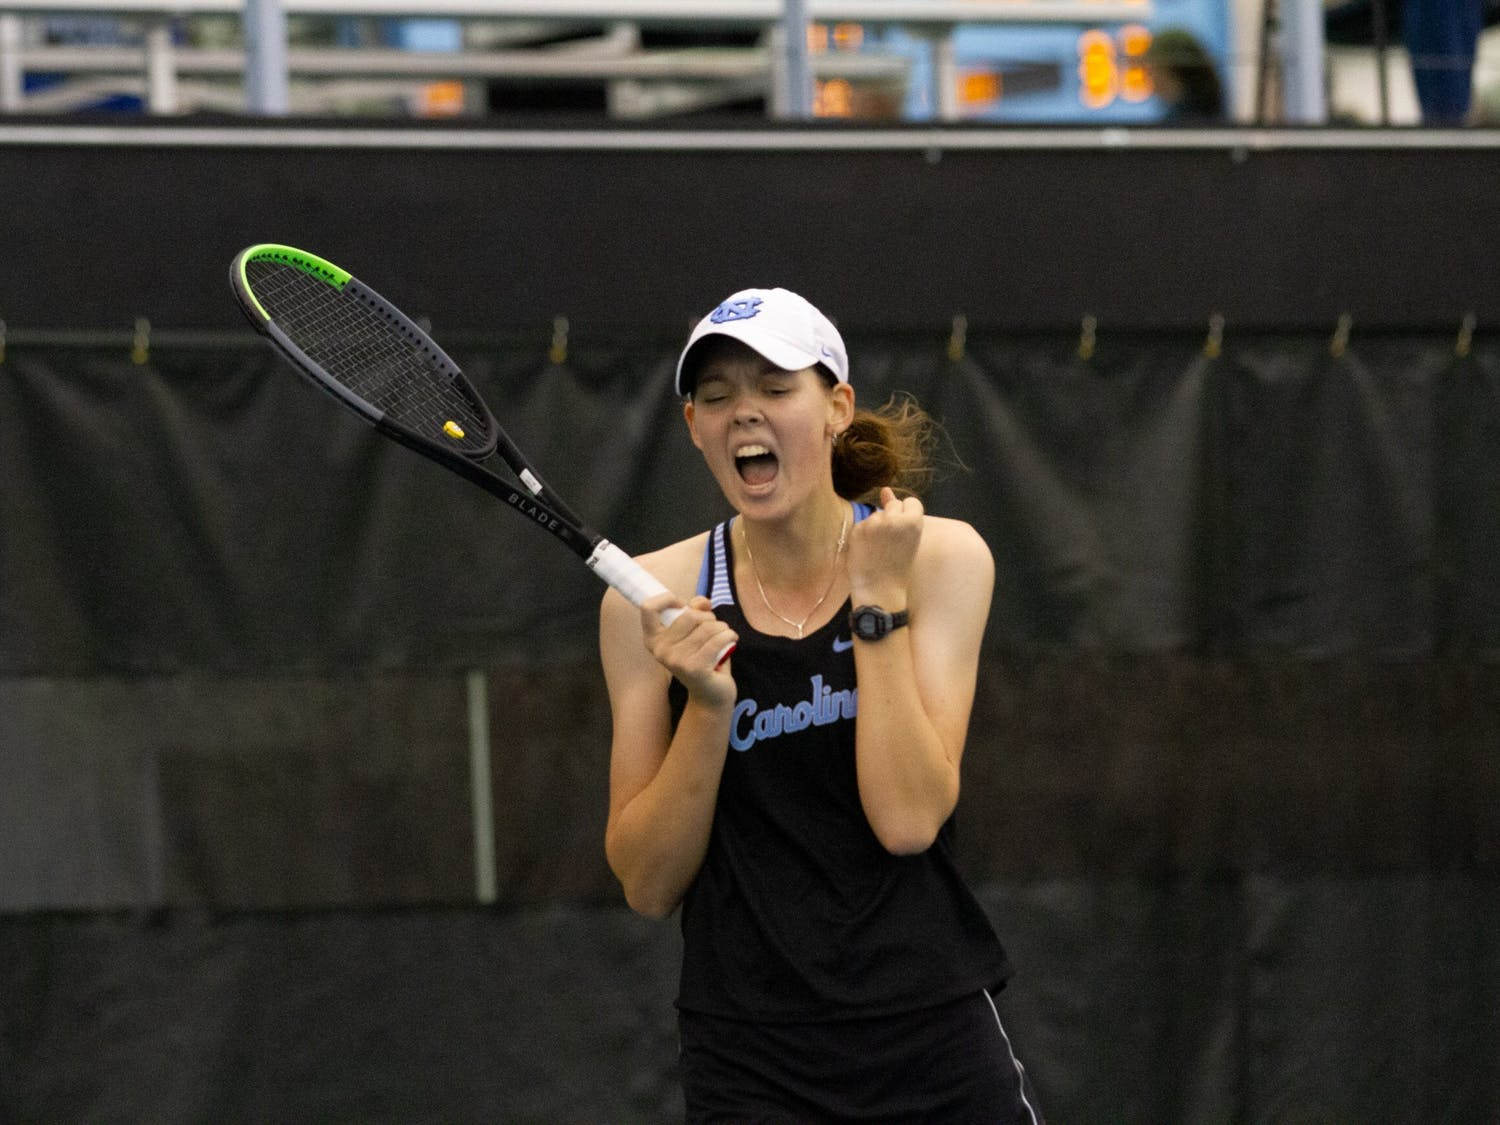 First-year Elizabeth Scotty shouts in celebration after successfully scoring a point during her singles match against Old Dominion University during the ITA Championship hosted at the Cone-Kenfield Tennis Center in Chapel Hill, NC, on Saturday, January 25th. The Tar Heels went on to win the championship  4-1 against Old Dominion University.